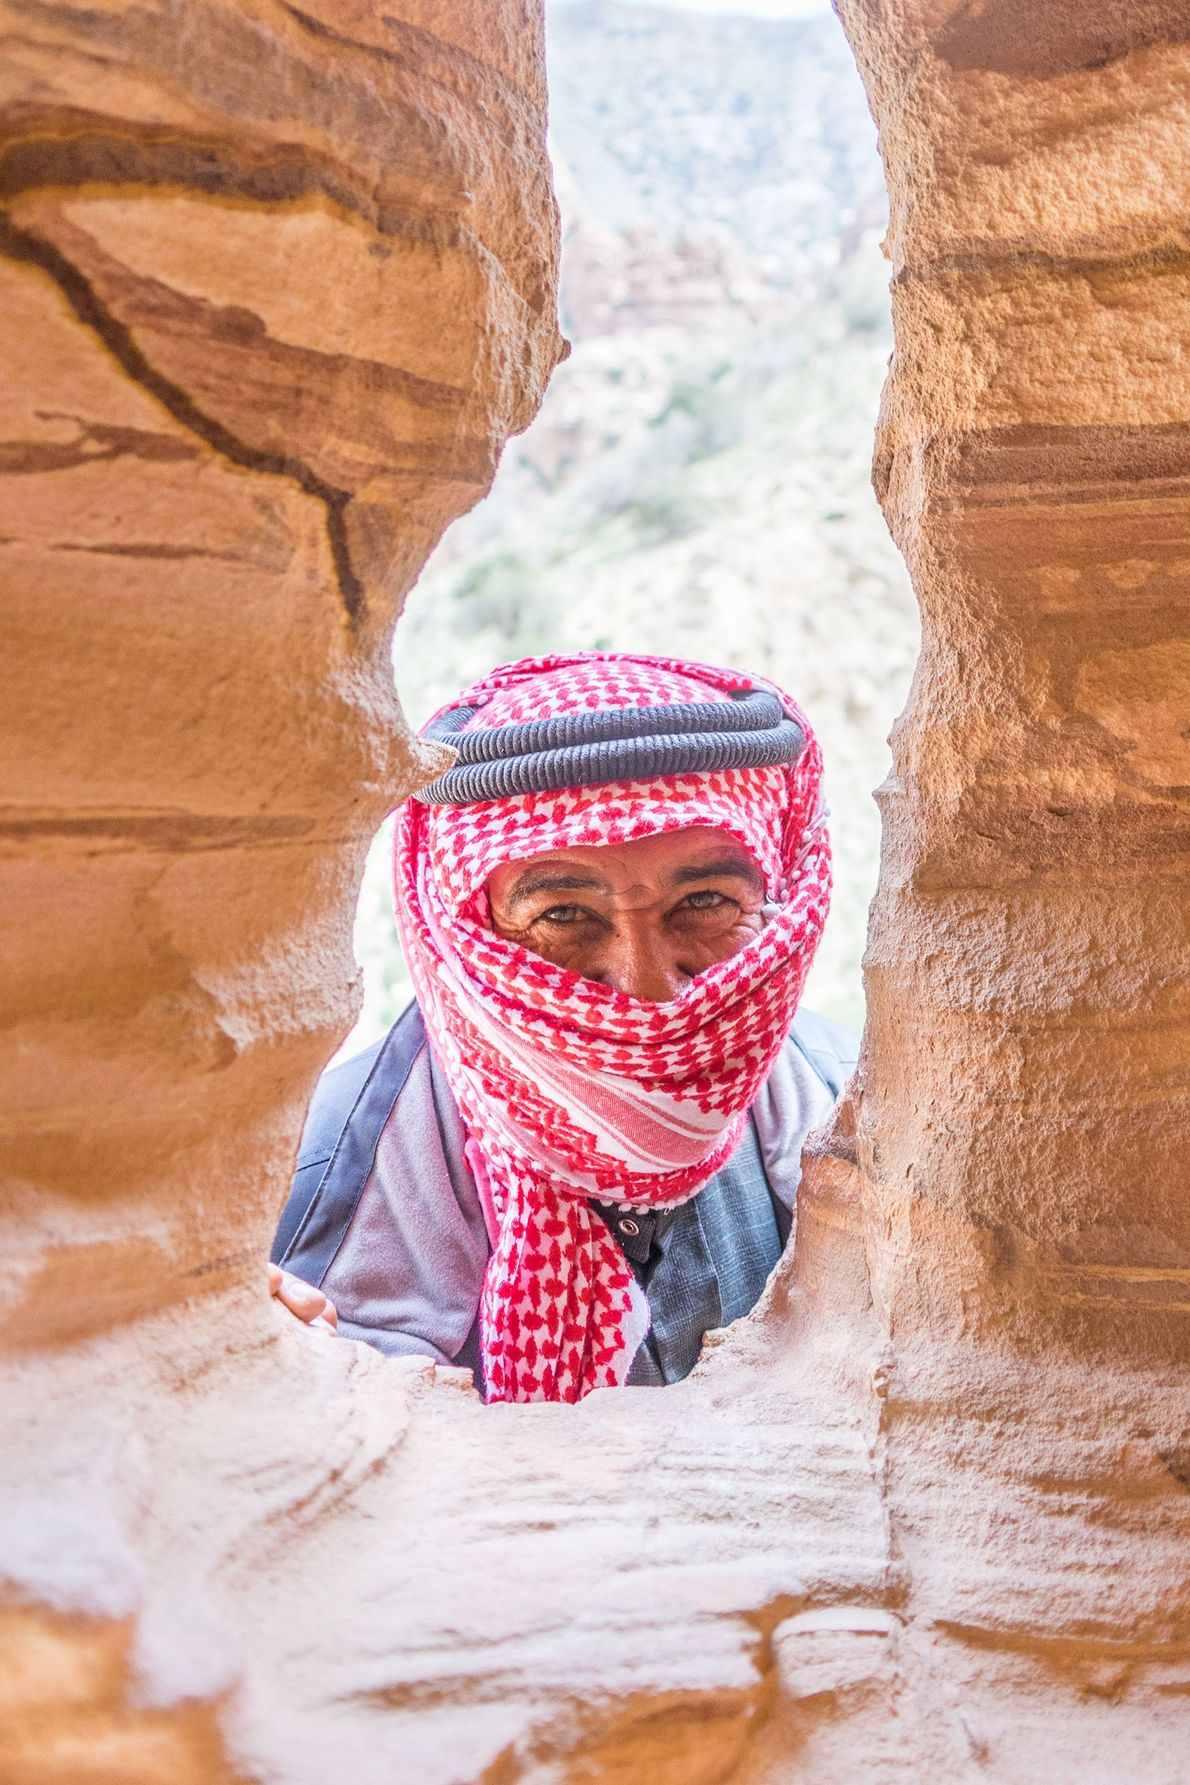 A covered face emerges between rocks.